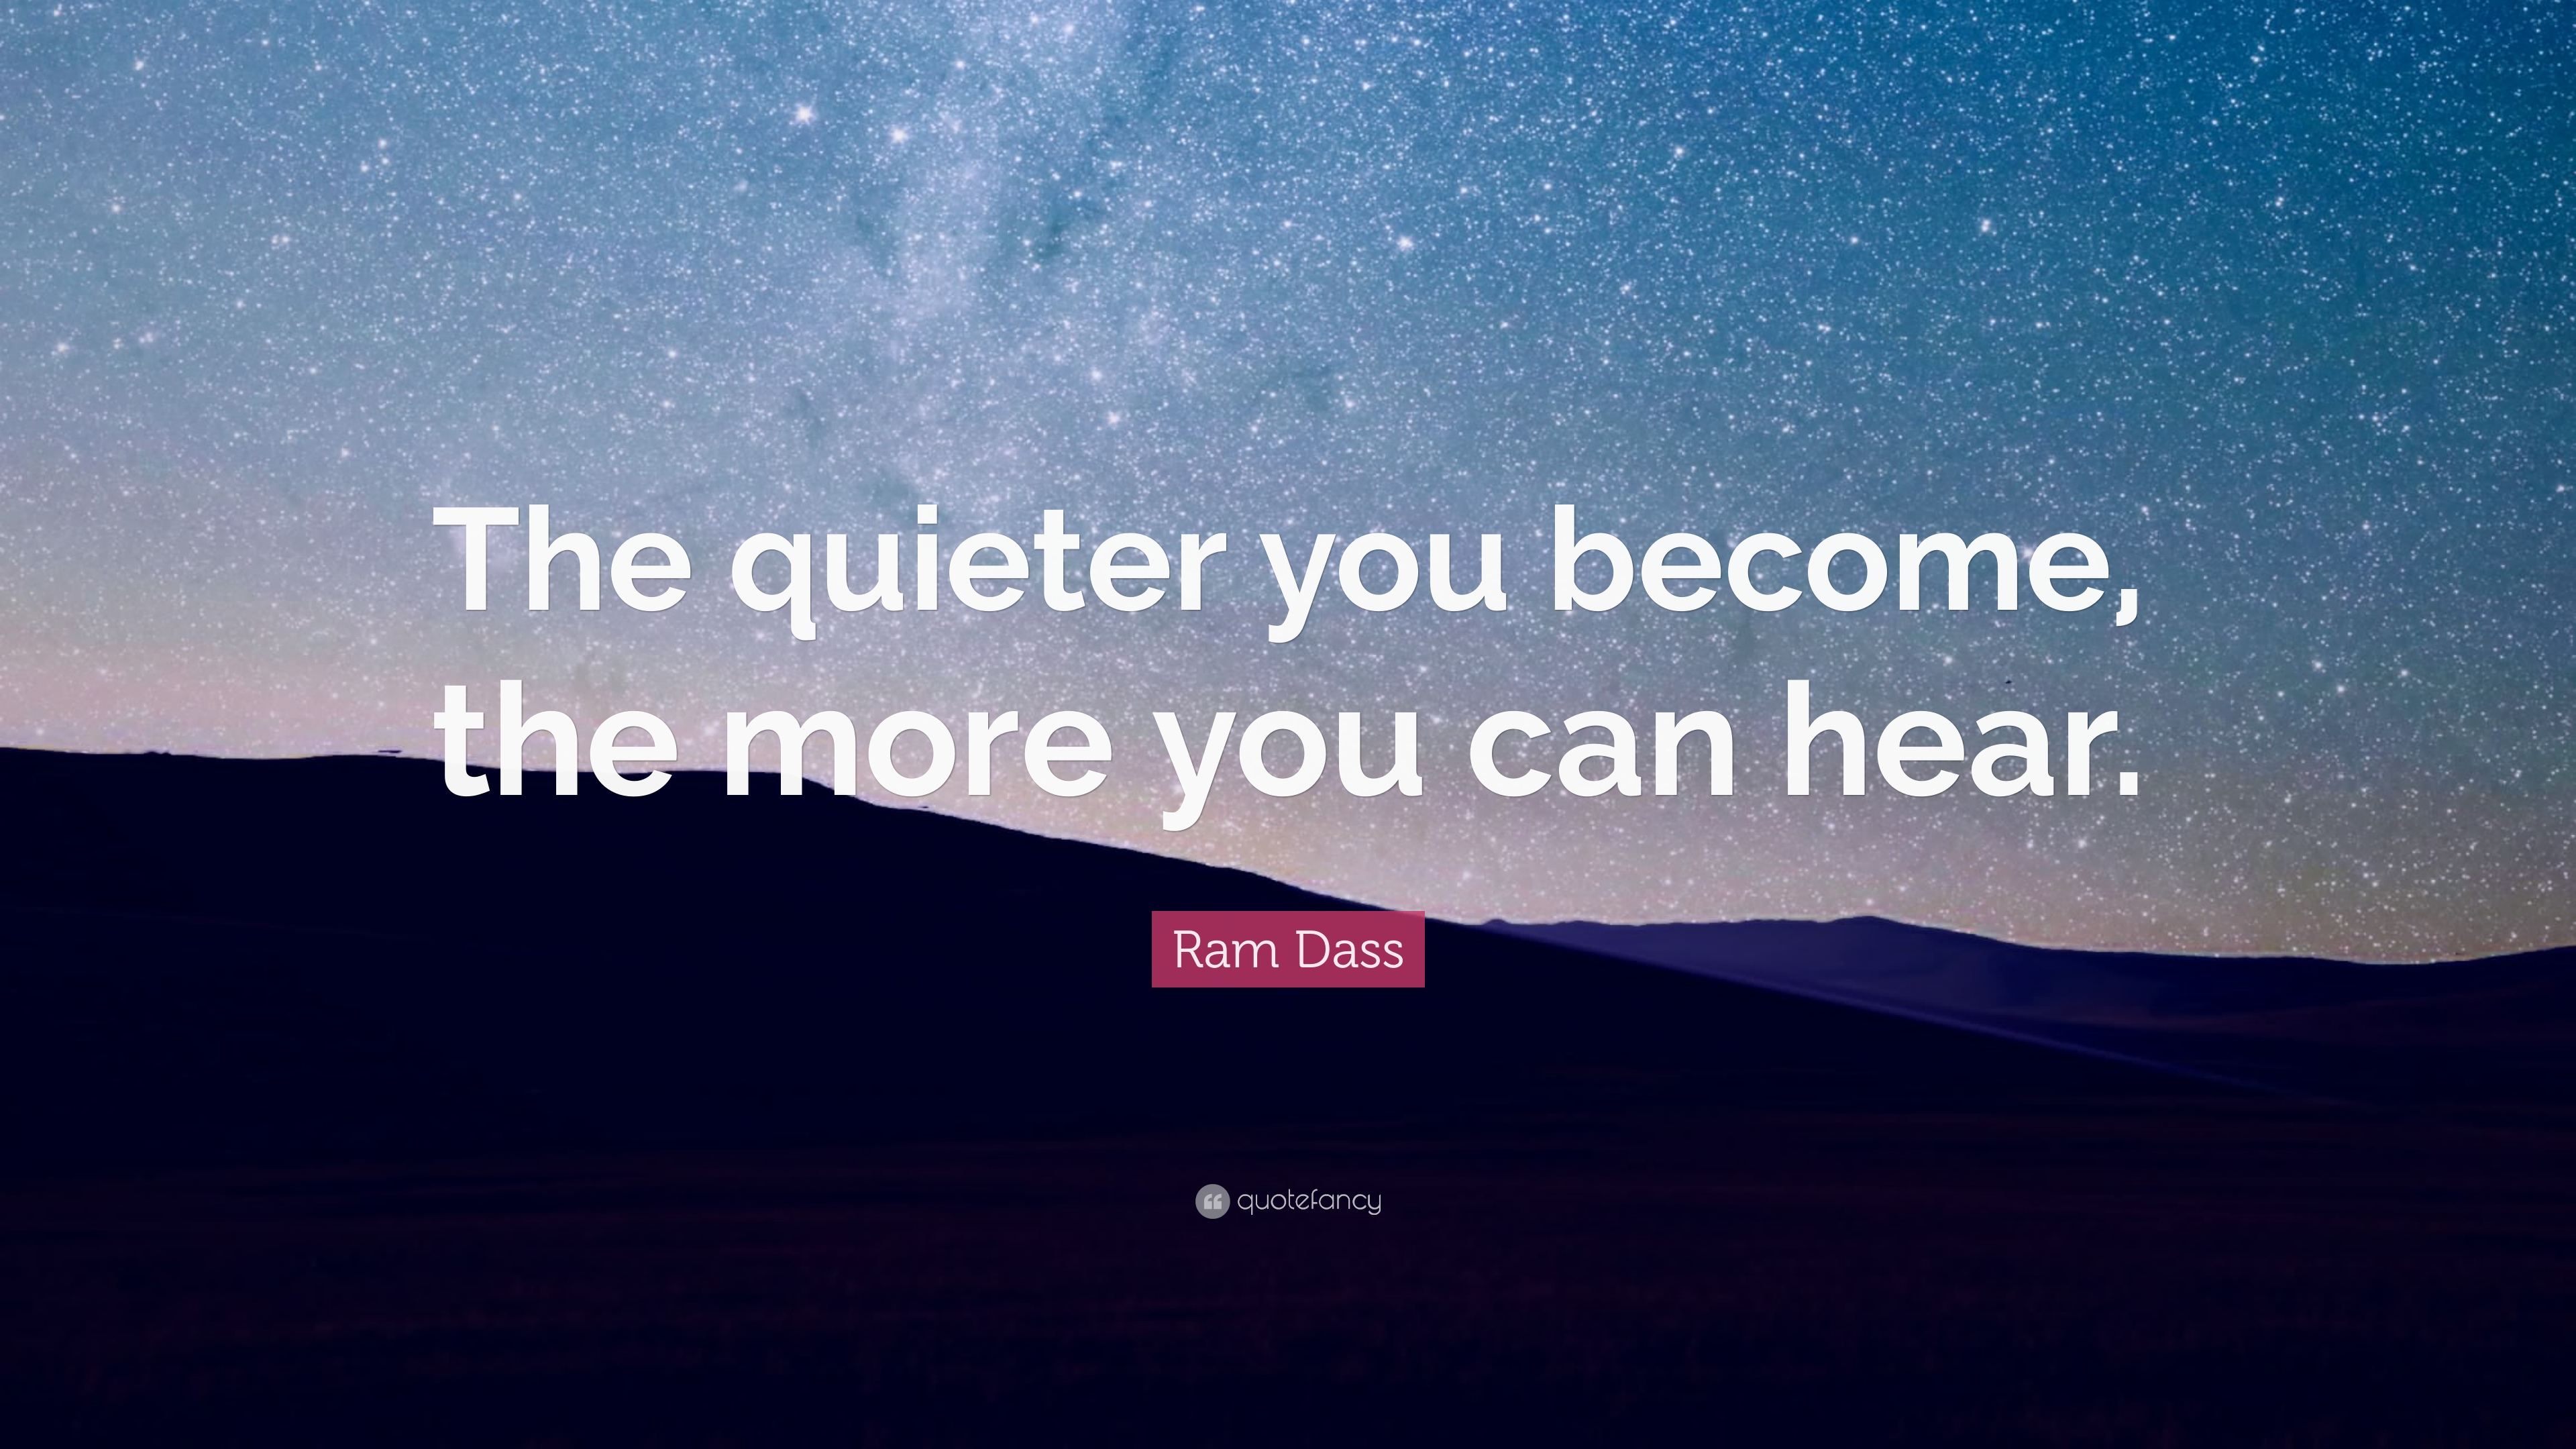 Zen Quote Wallpaper Ram Dass Quote The Quieter You Become The More You Can